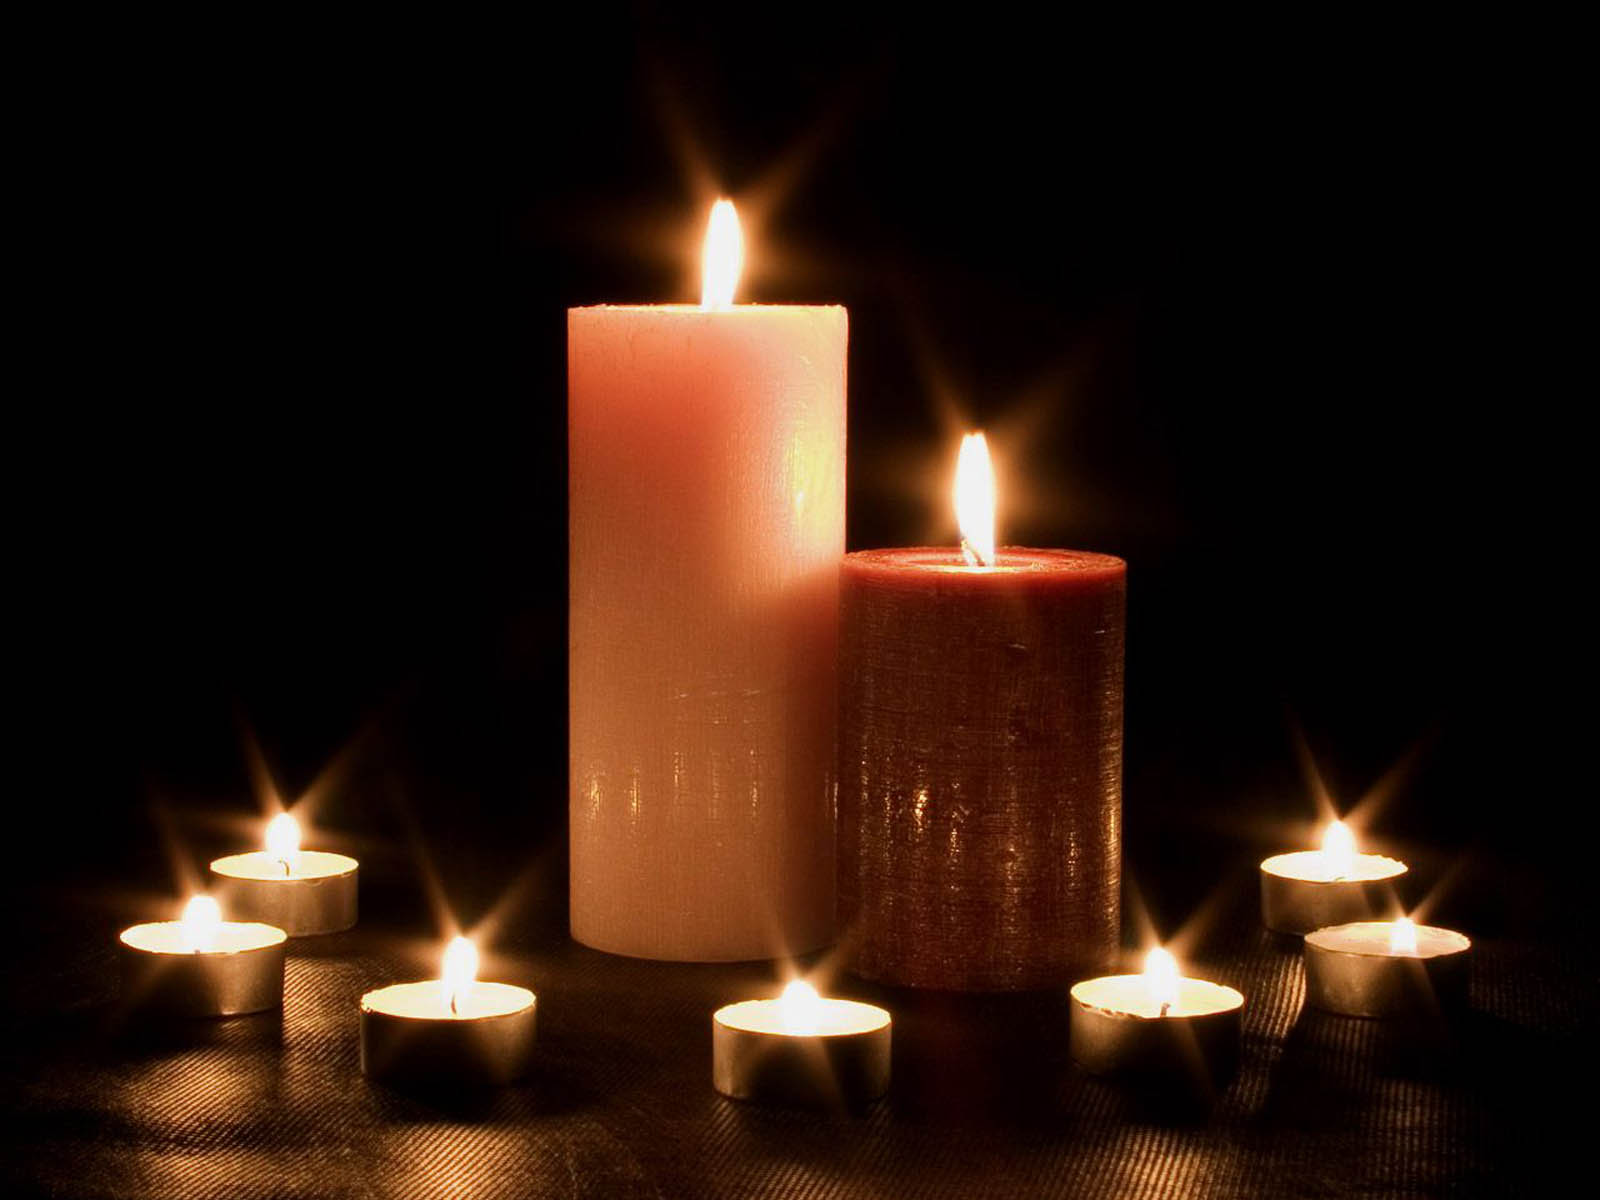 Wallpapers: Candles Wallpapers